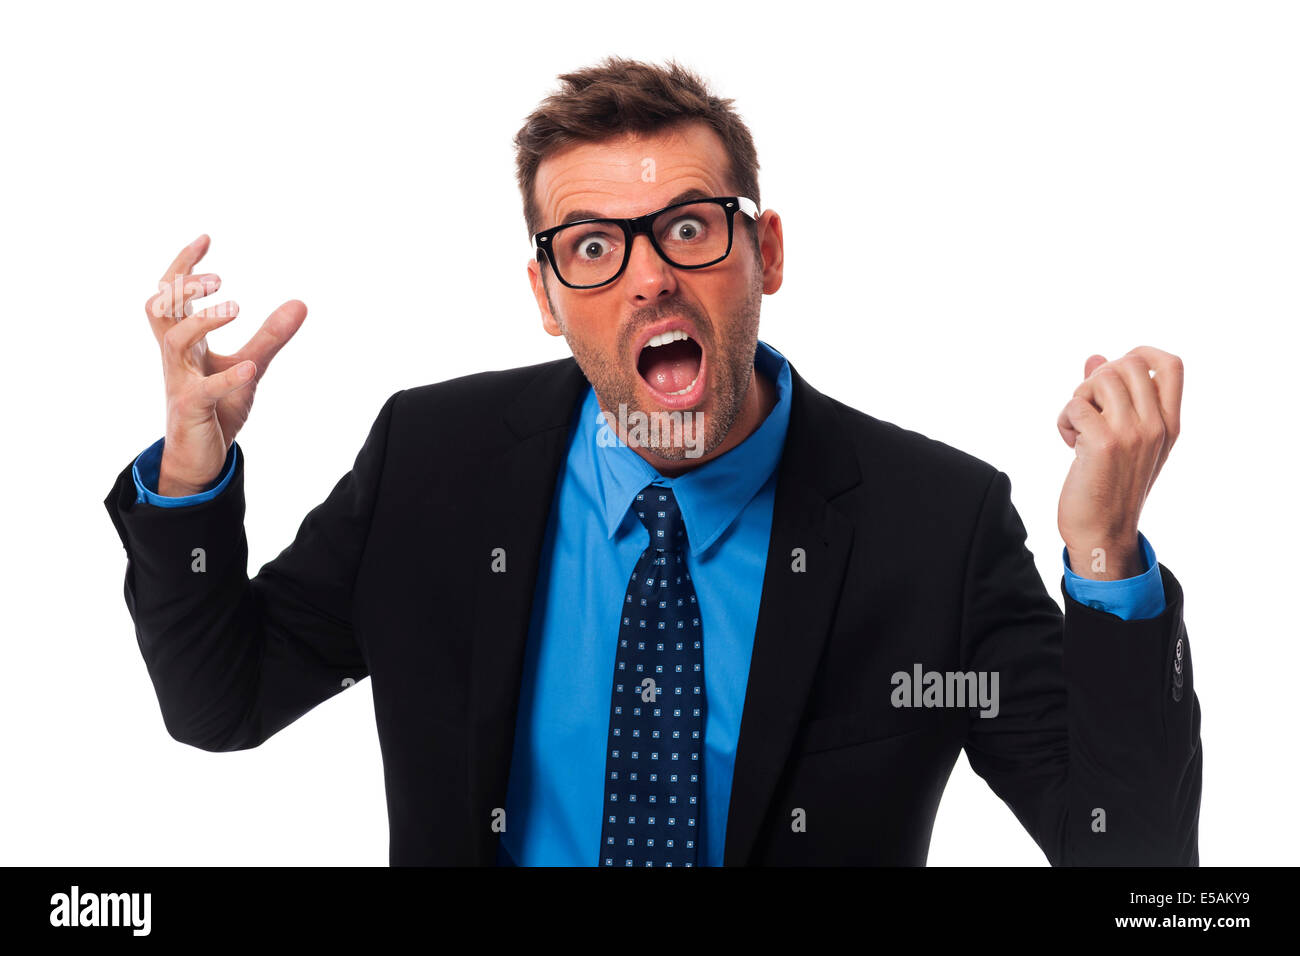 Angry businessman screaming very loud, Debica, Poland - Stock Image